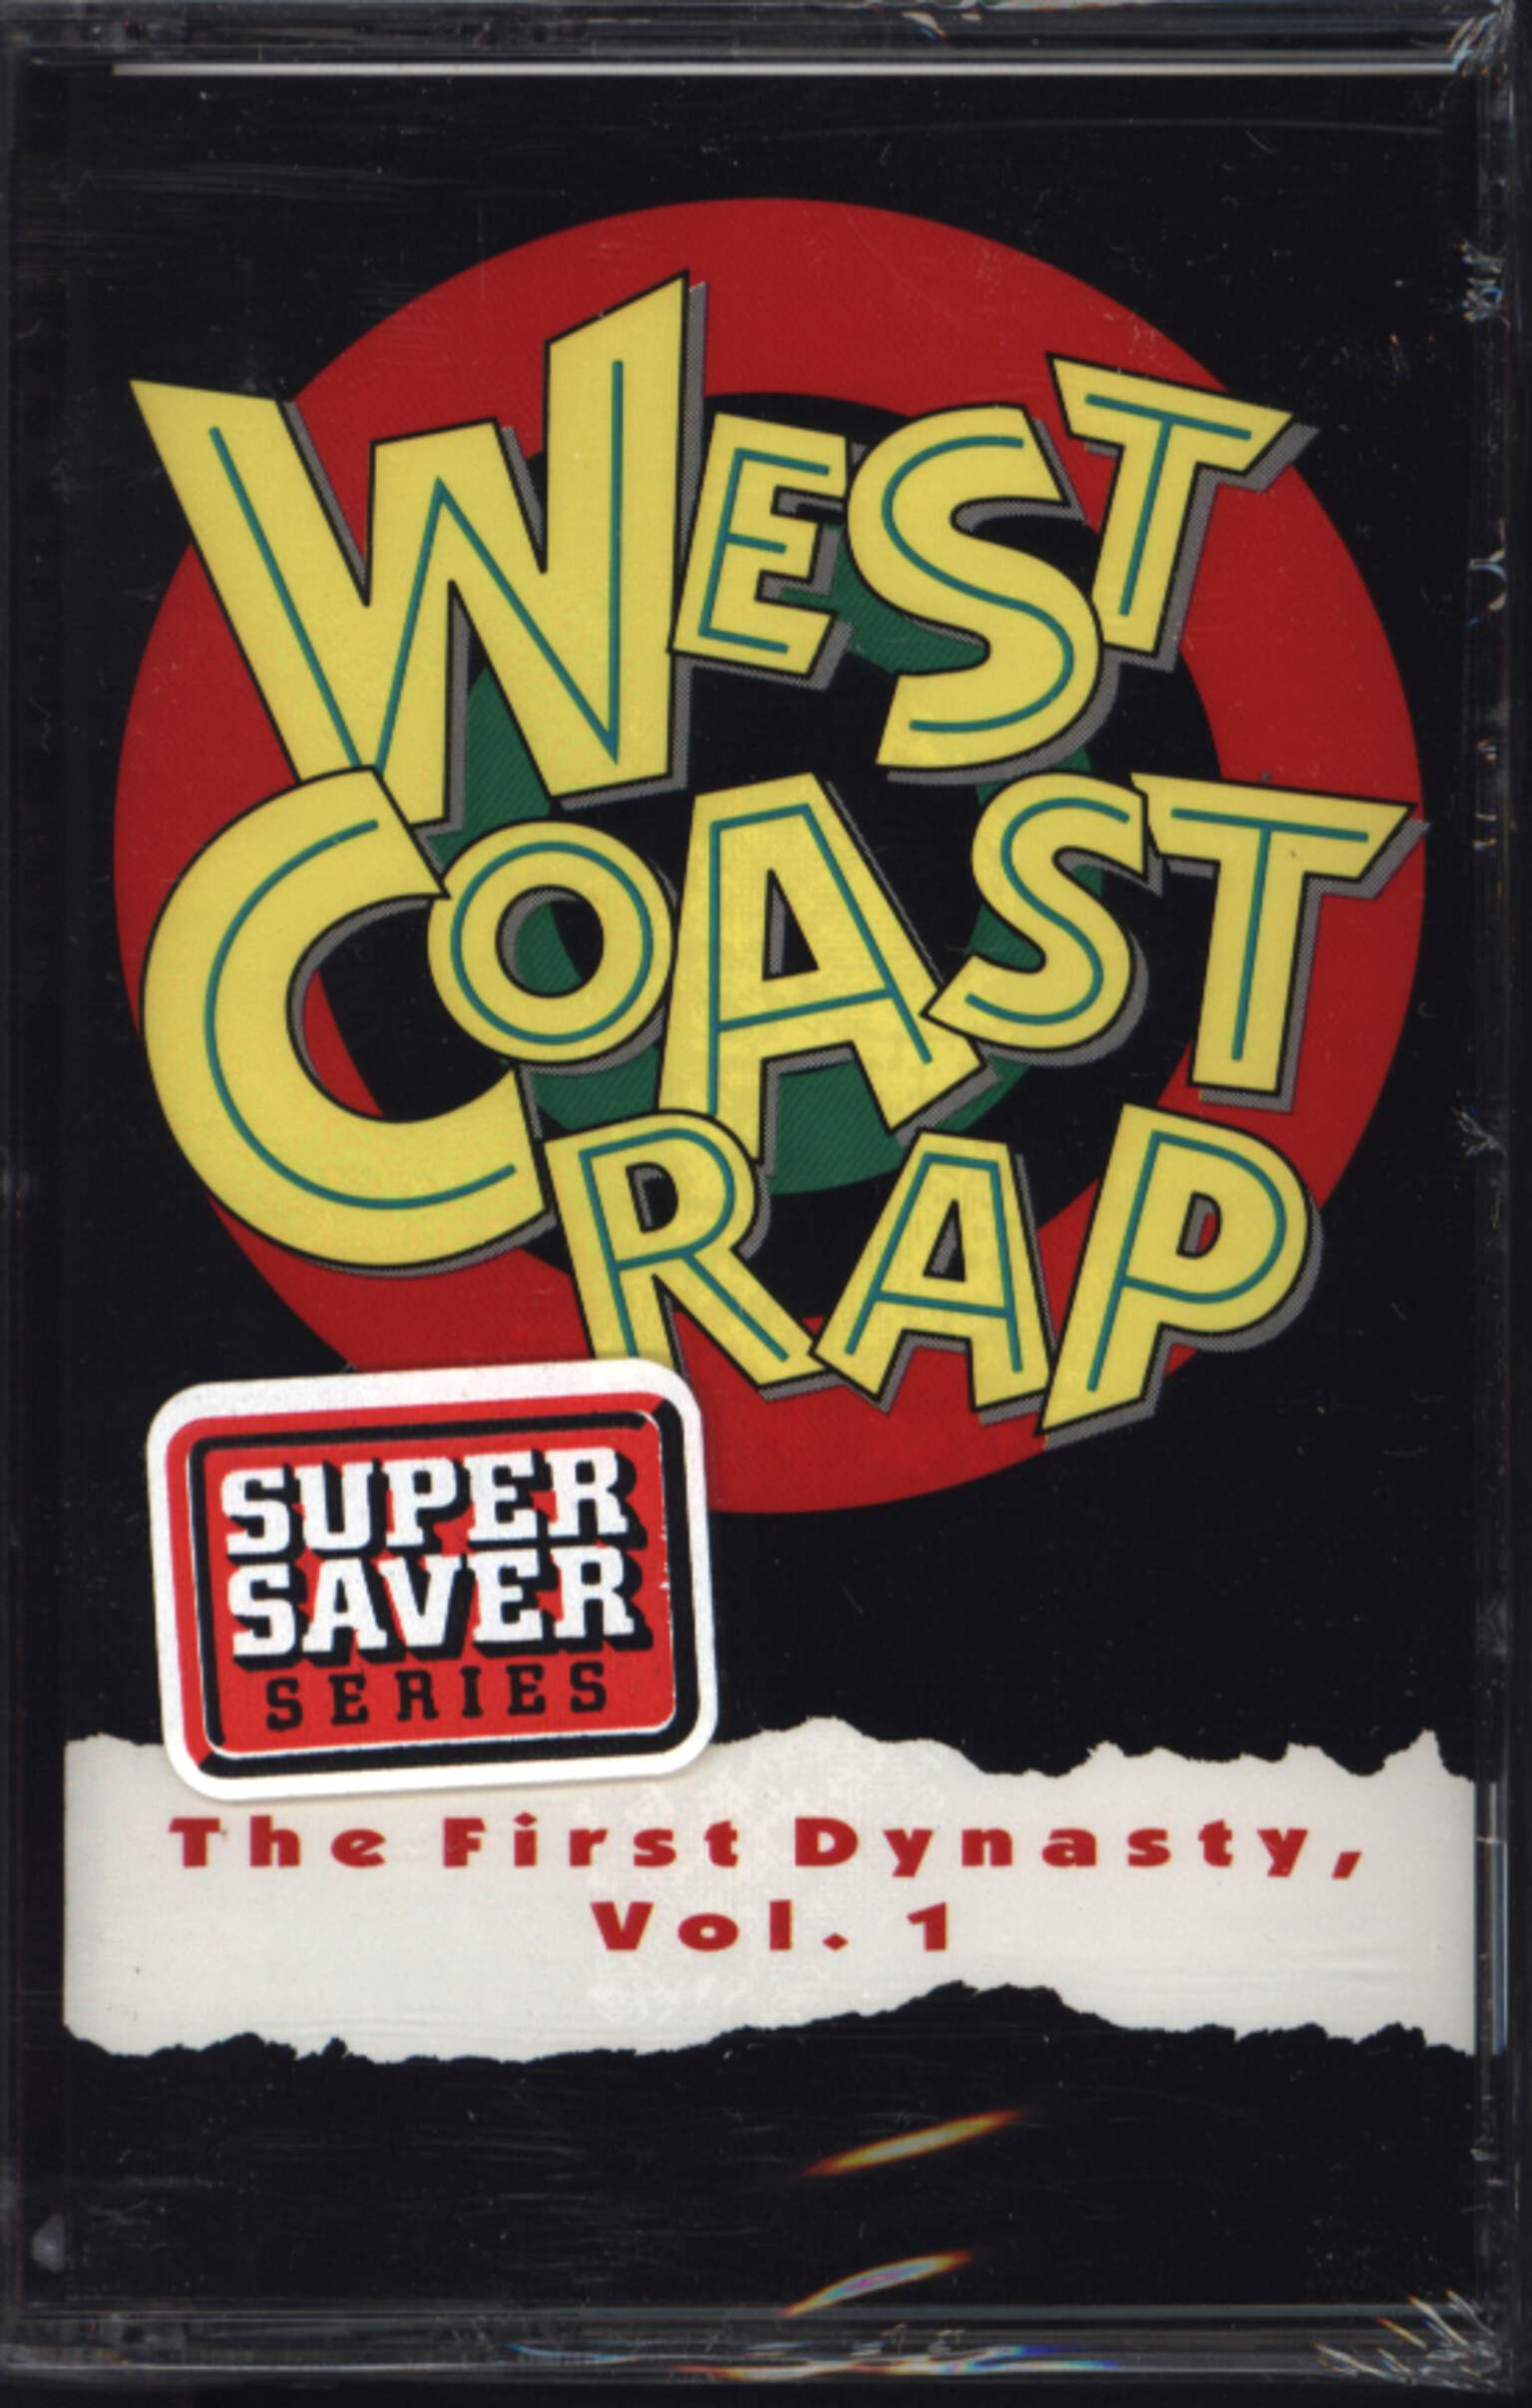 Various: West Coast Rap - The First Dynasty, Vol. 1, Compact Cassette